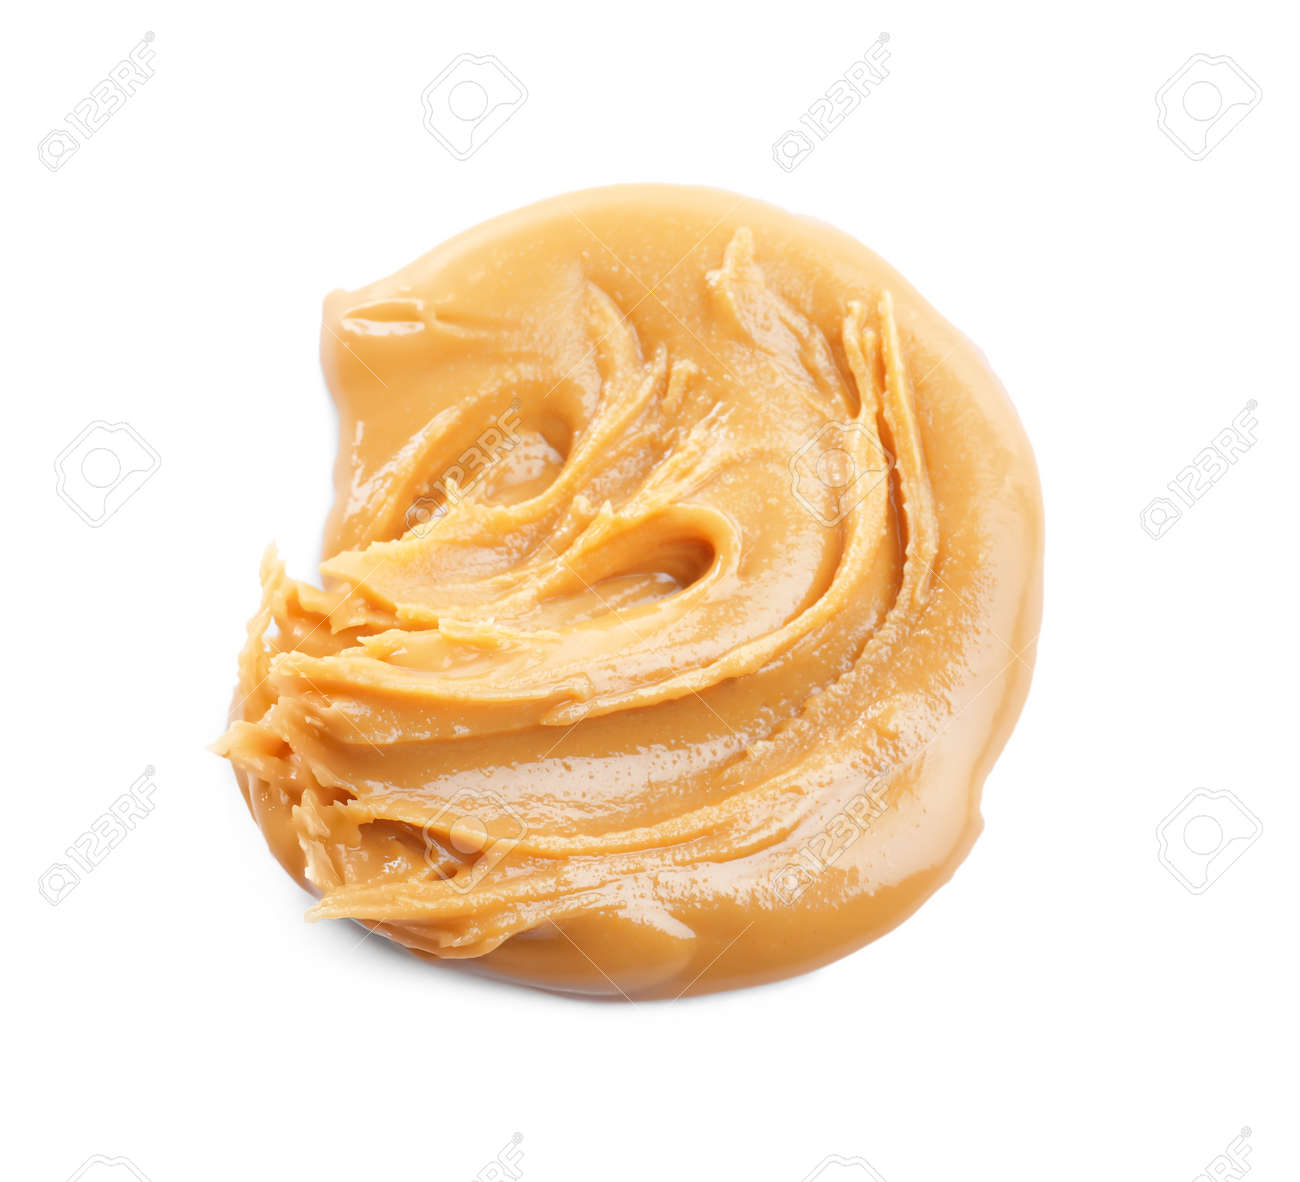 Delicious peanut butter isolated on white, top view - 166230755